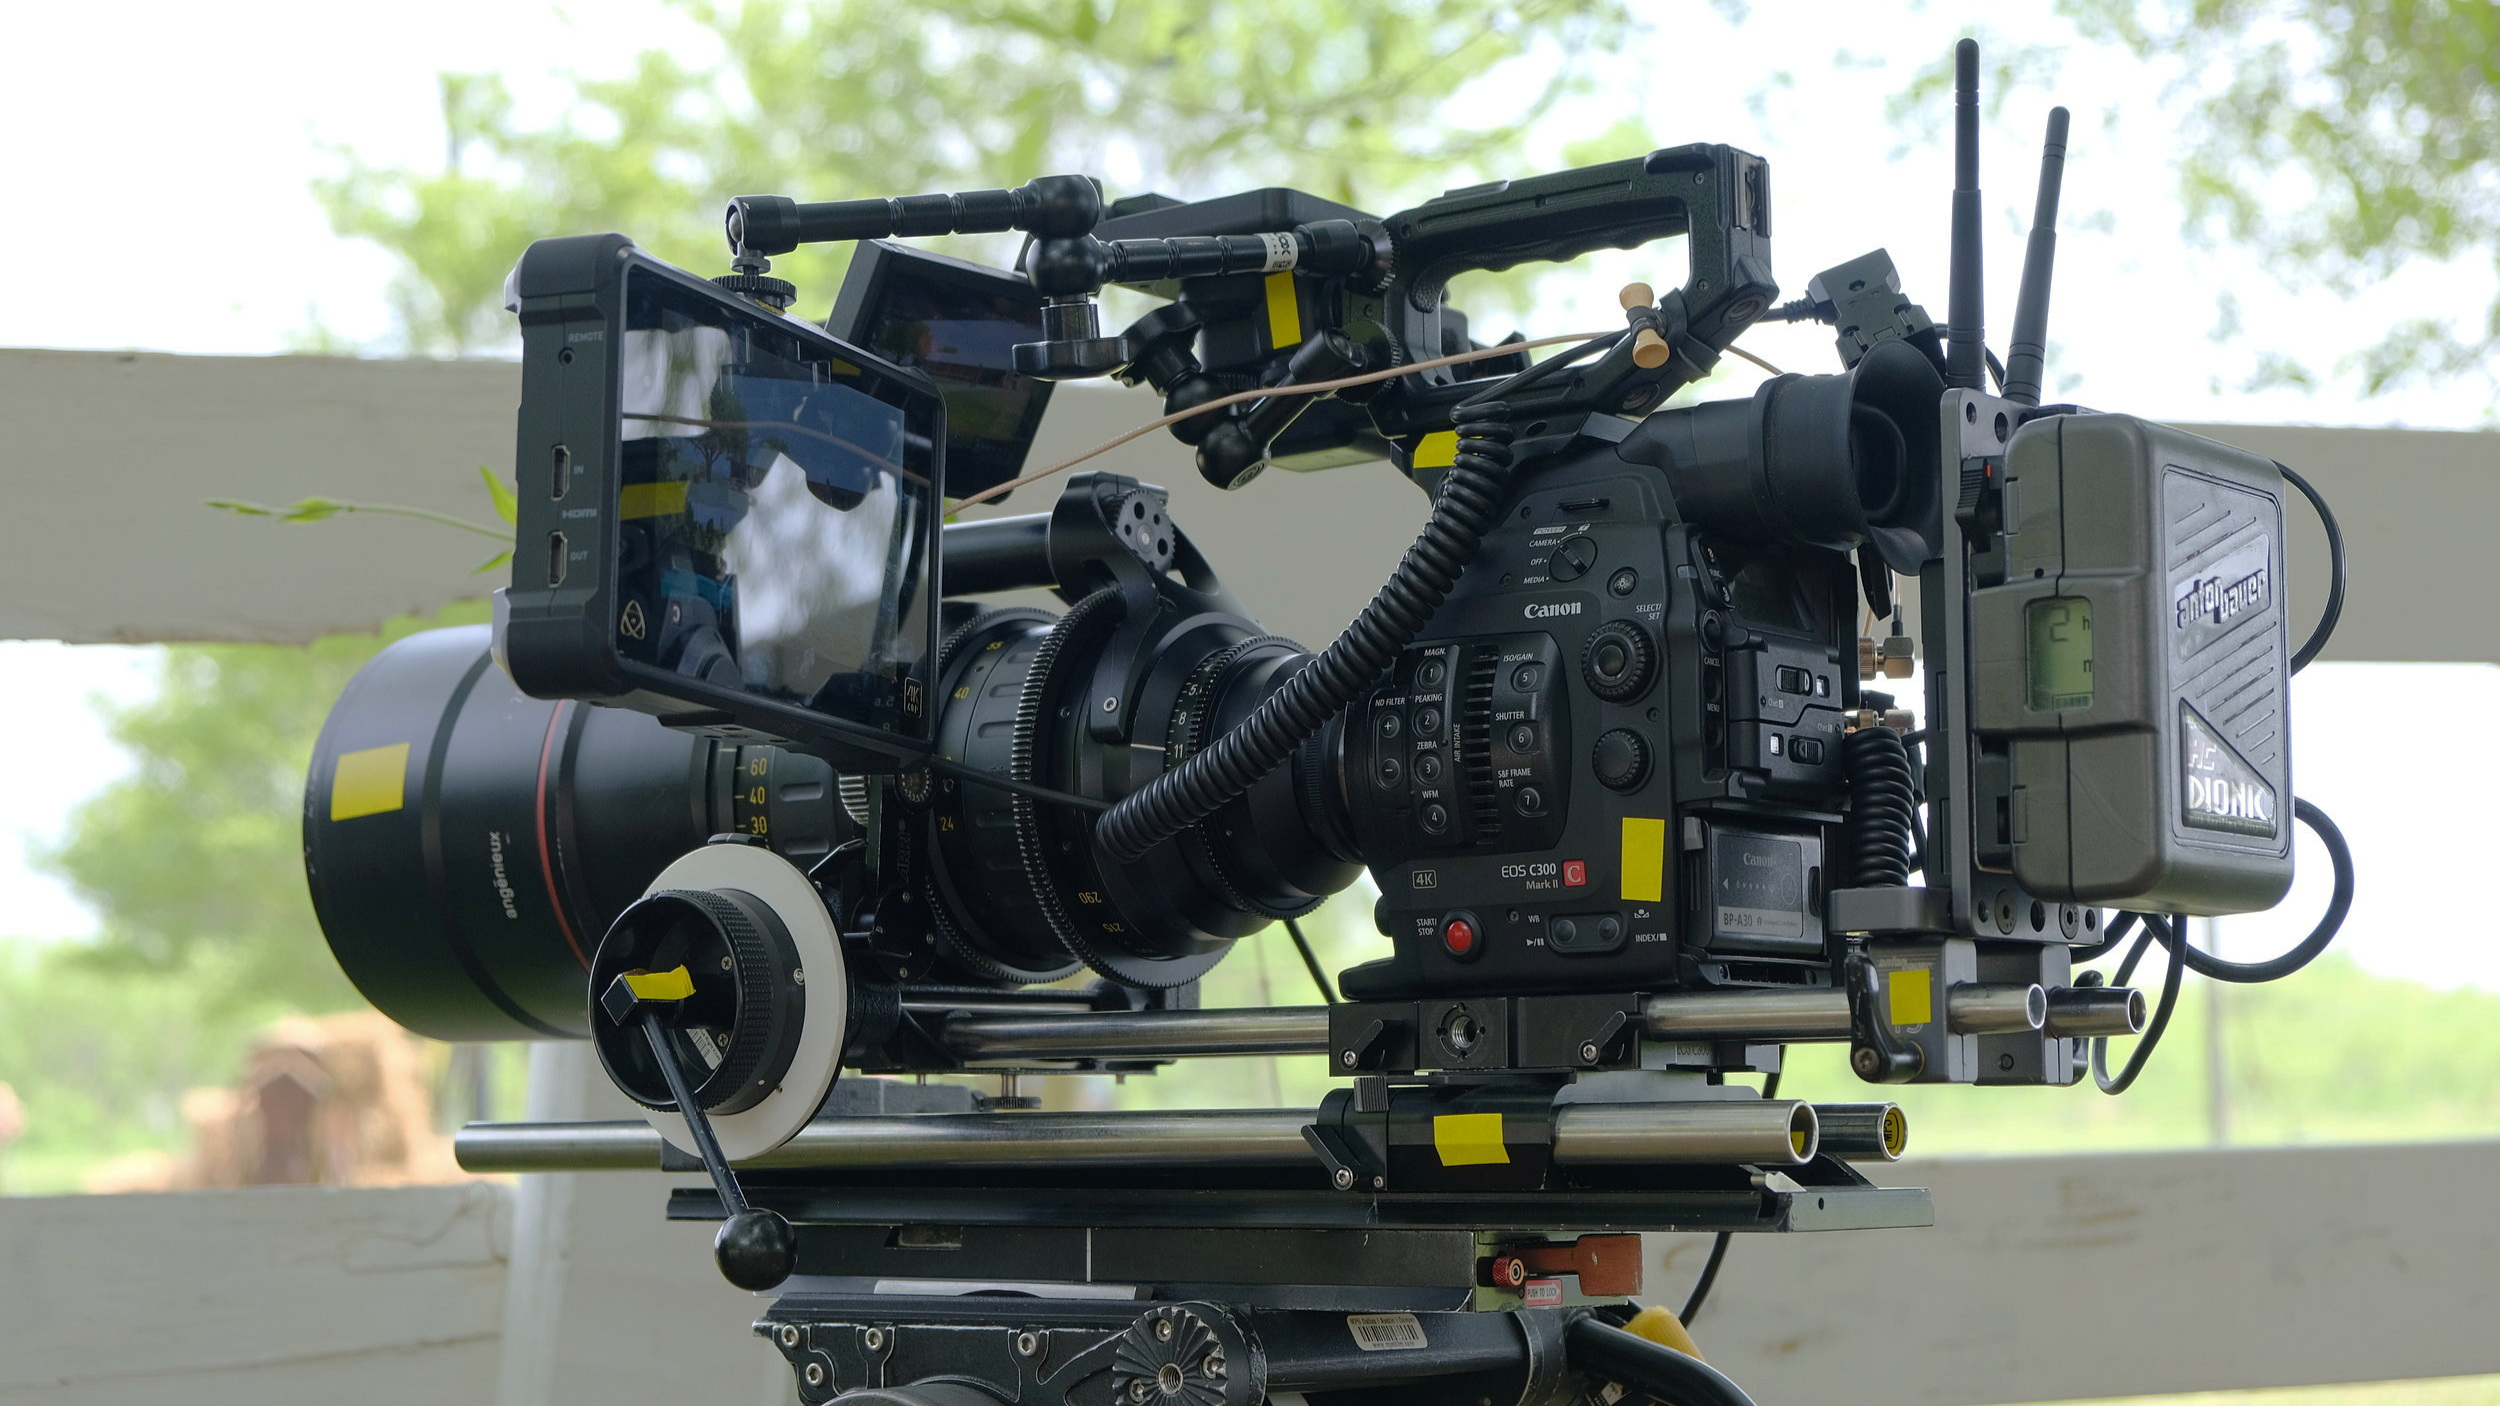 CREW & EQUIPMENT - Production coordinationCamera, lighting and specialty equipmentDP, Cinematography, and multi-camera expertiseEditorial and finishing services